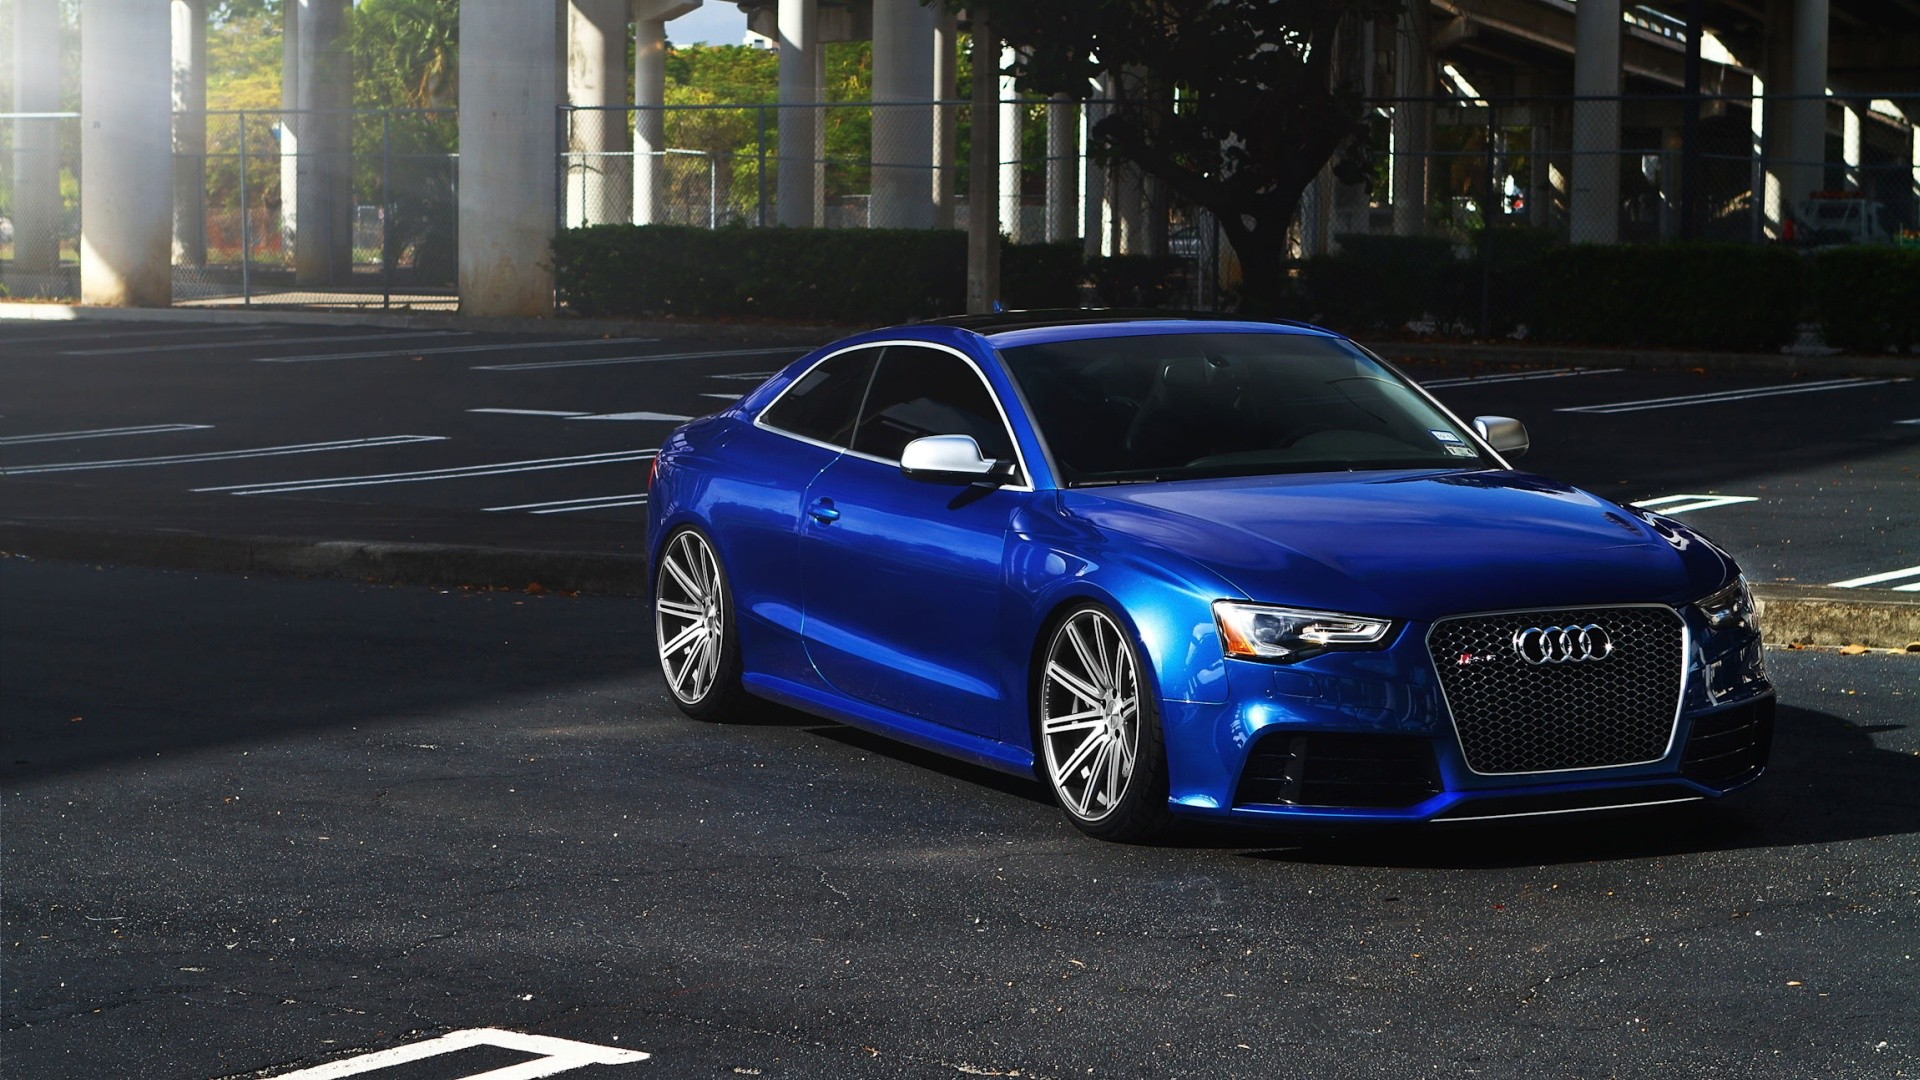 1920x1080 wallpaper.wiki-Audi-S5-HD-Background-PIC-WPB0015753